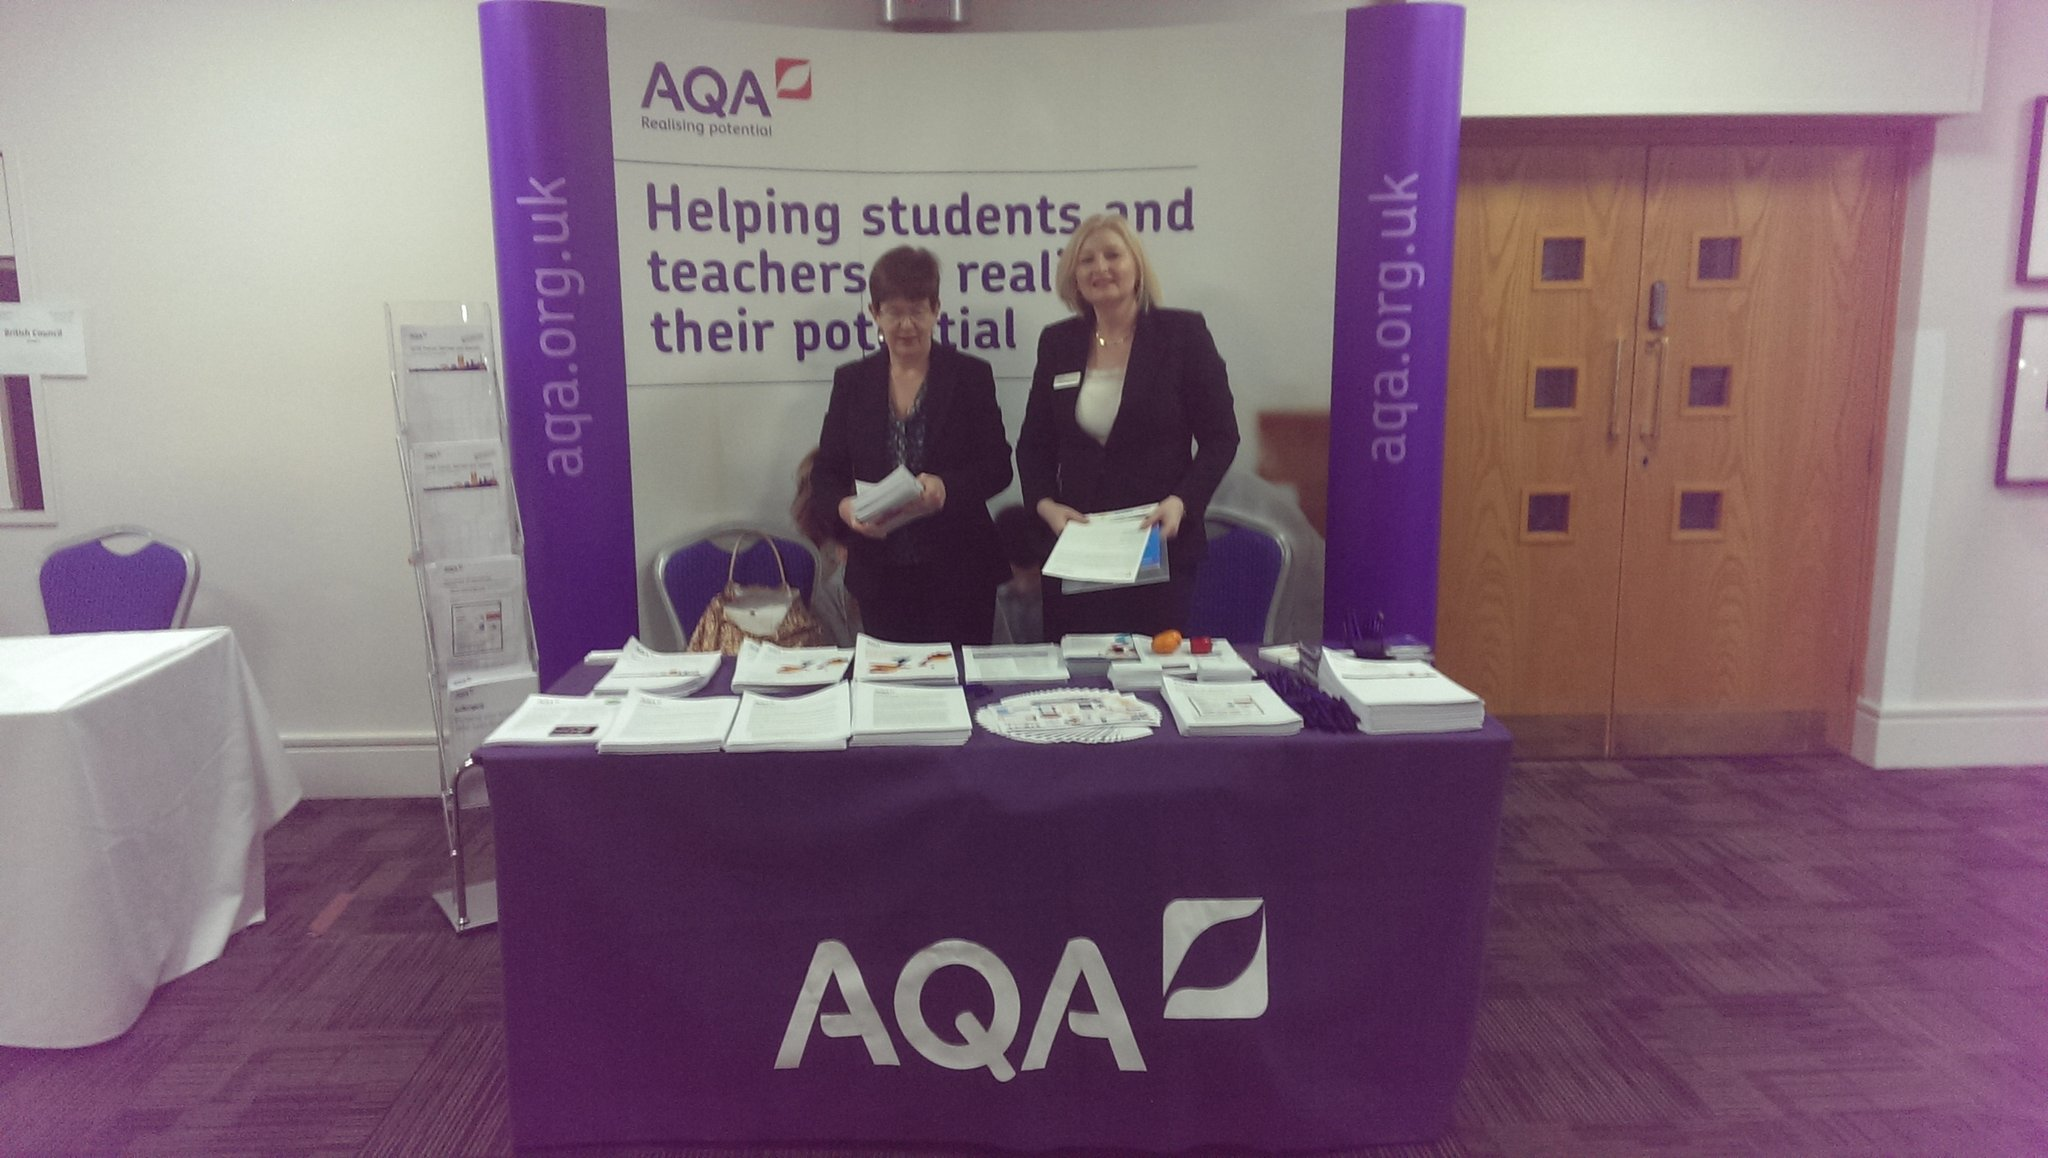 @AQA ready for #LW2017 @ALL4language https://t.co/NIK22ISmHQ